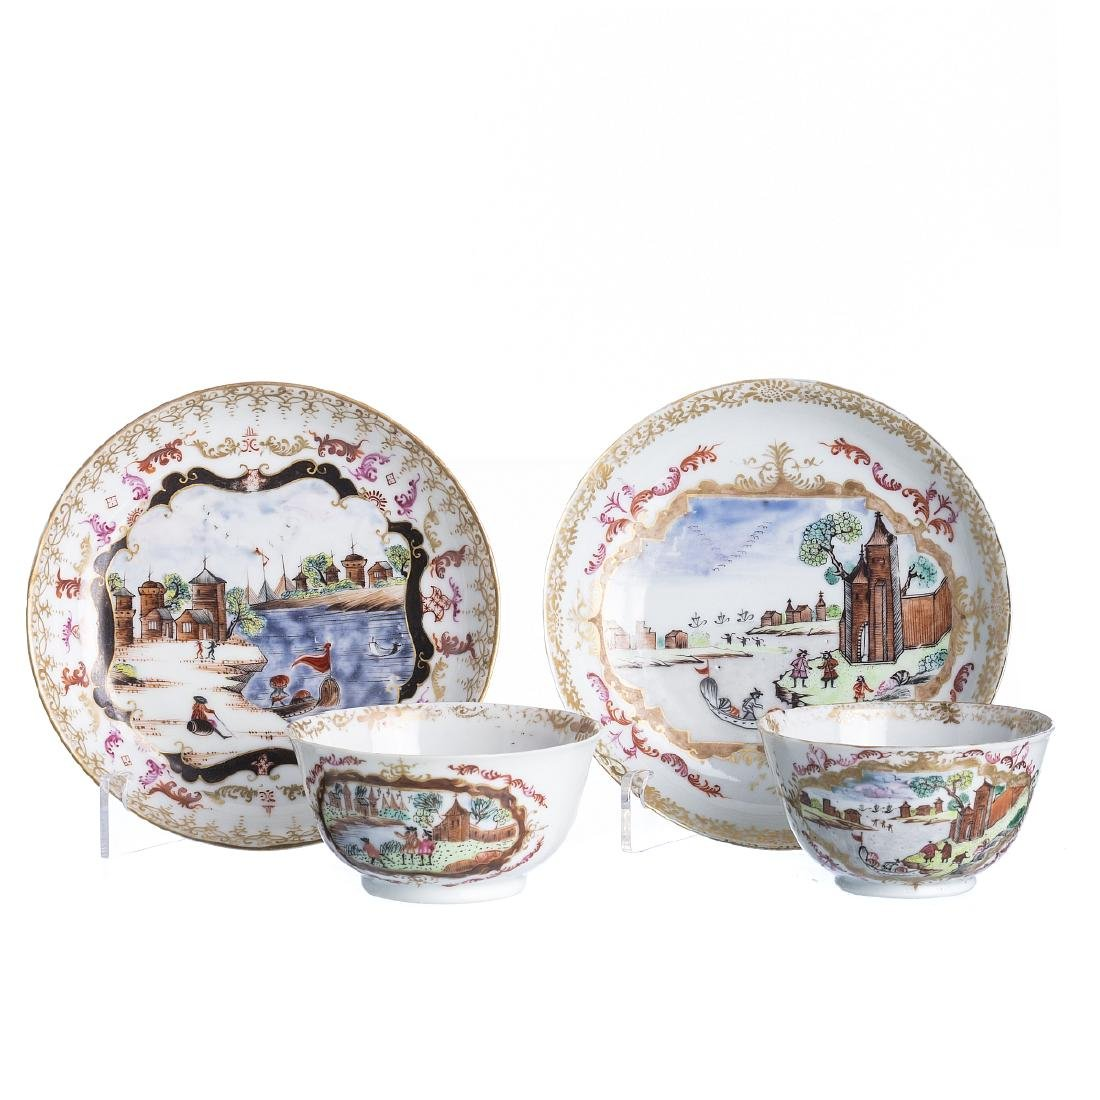 Pair of Meissen style Chinese porcelain cups and